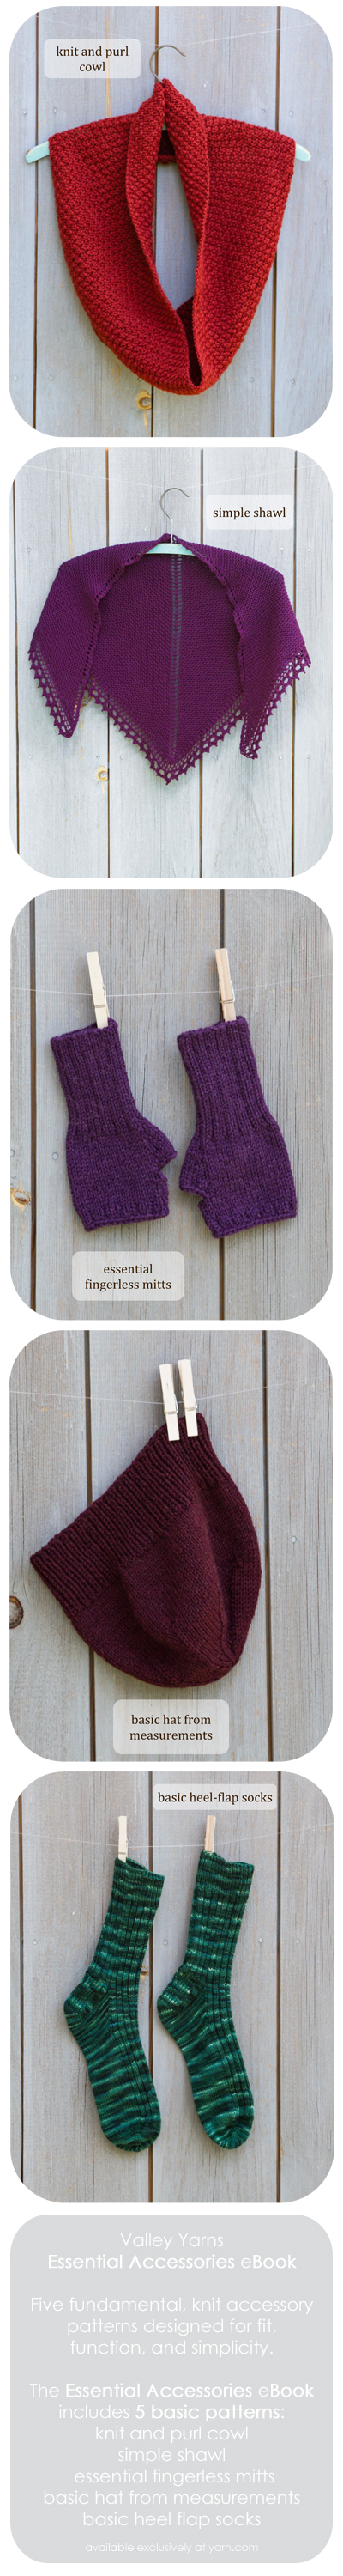 Valley Yarns Essential Accessories eBook - available exclusively at yarn.com